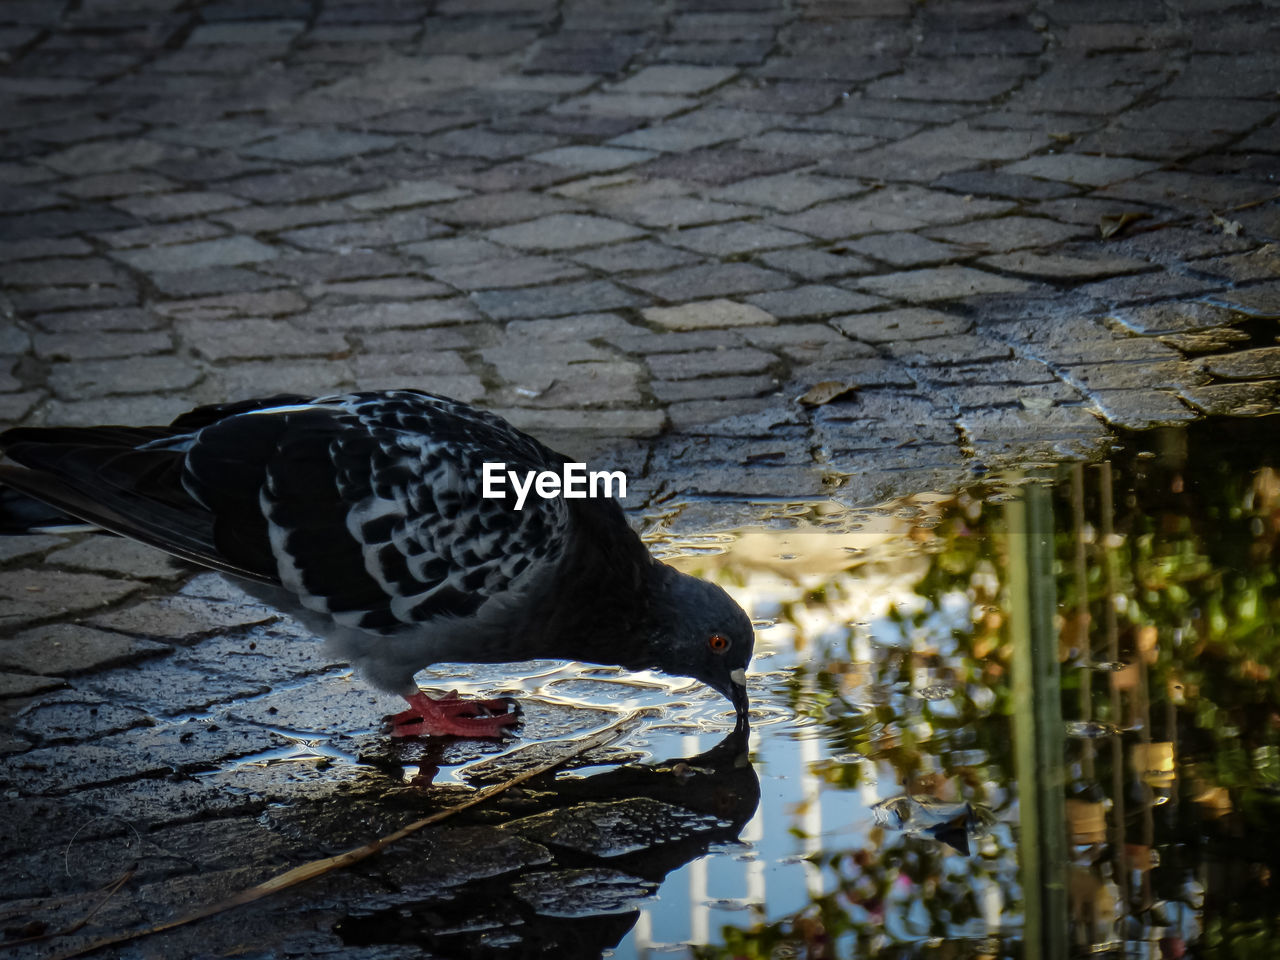 bird, animal themes, animal, vertebrate, animals in the wild, animal wildlife, one animal, no people, water, day, perching, nature, outdoors, lake, black color, full length, pigeon, architecture, selective focus, drinking